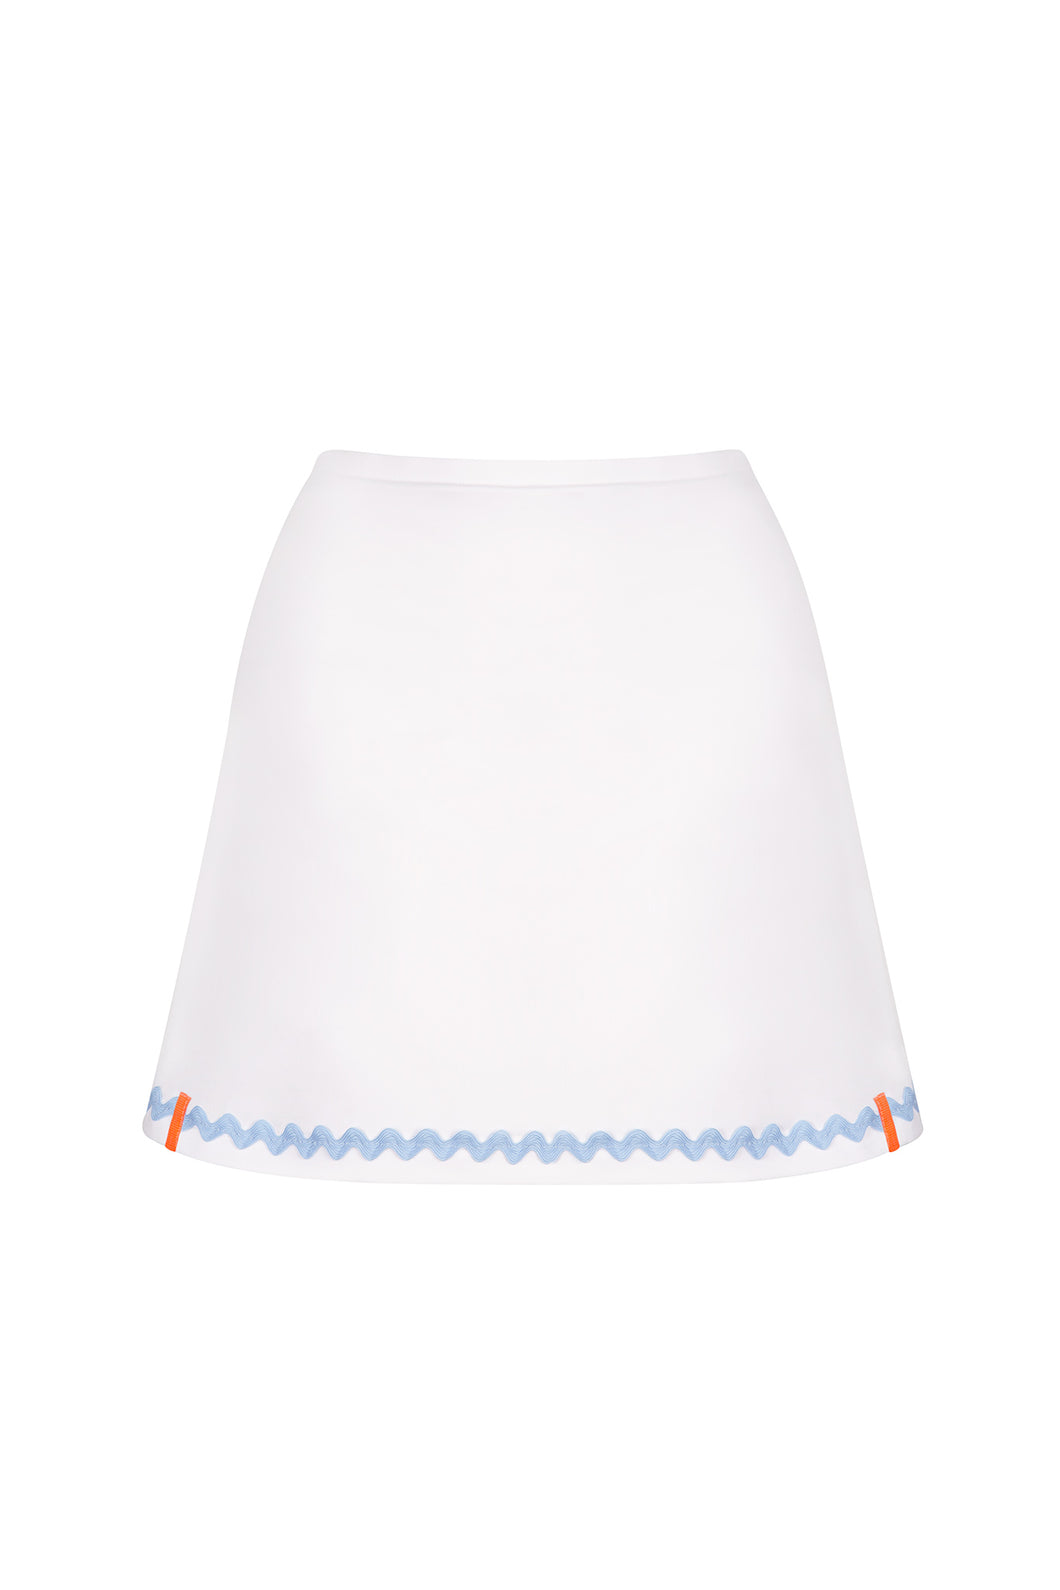 White Tennis Skort with Pale Blue Ric Rac Trim